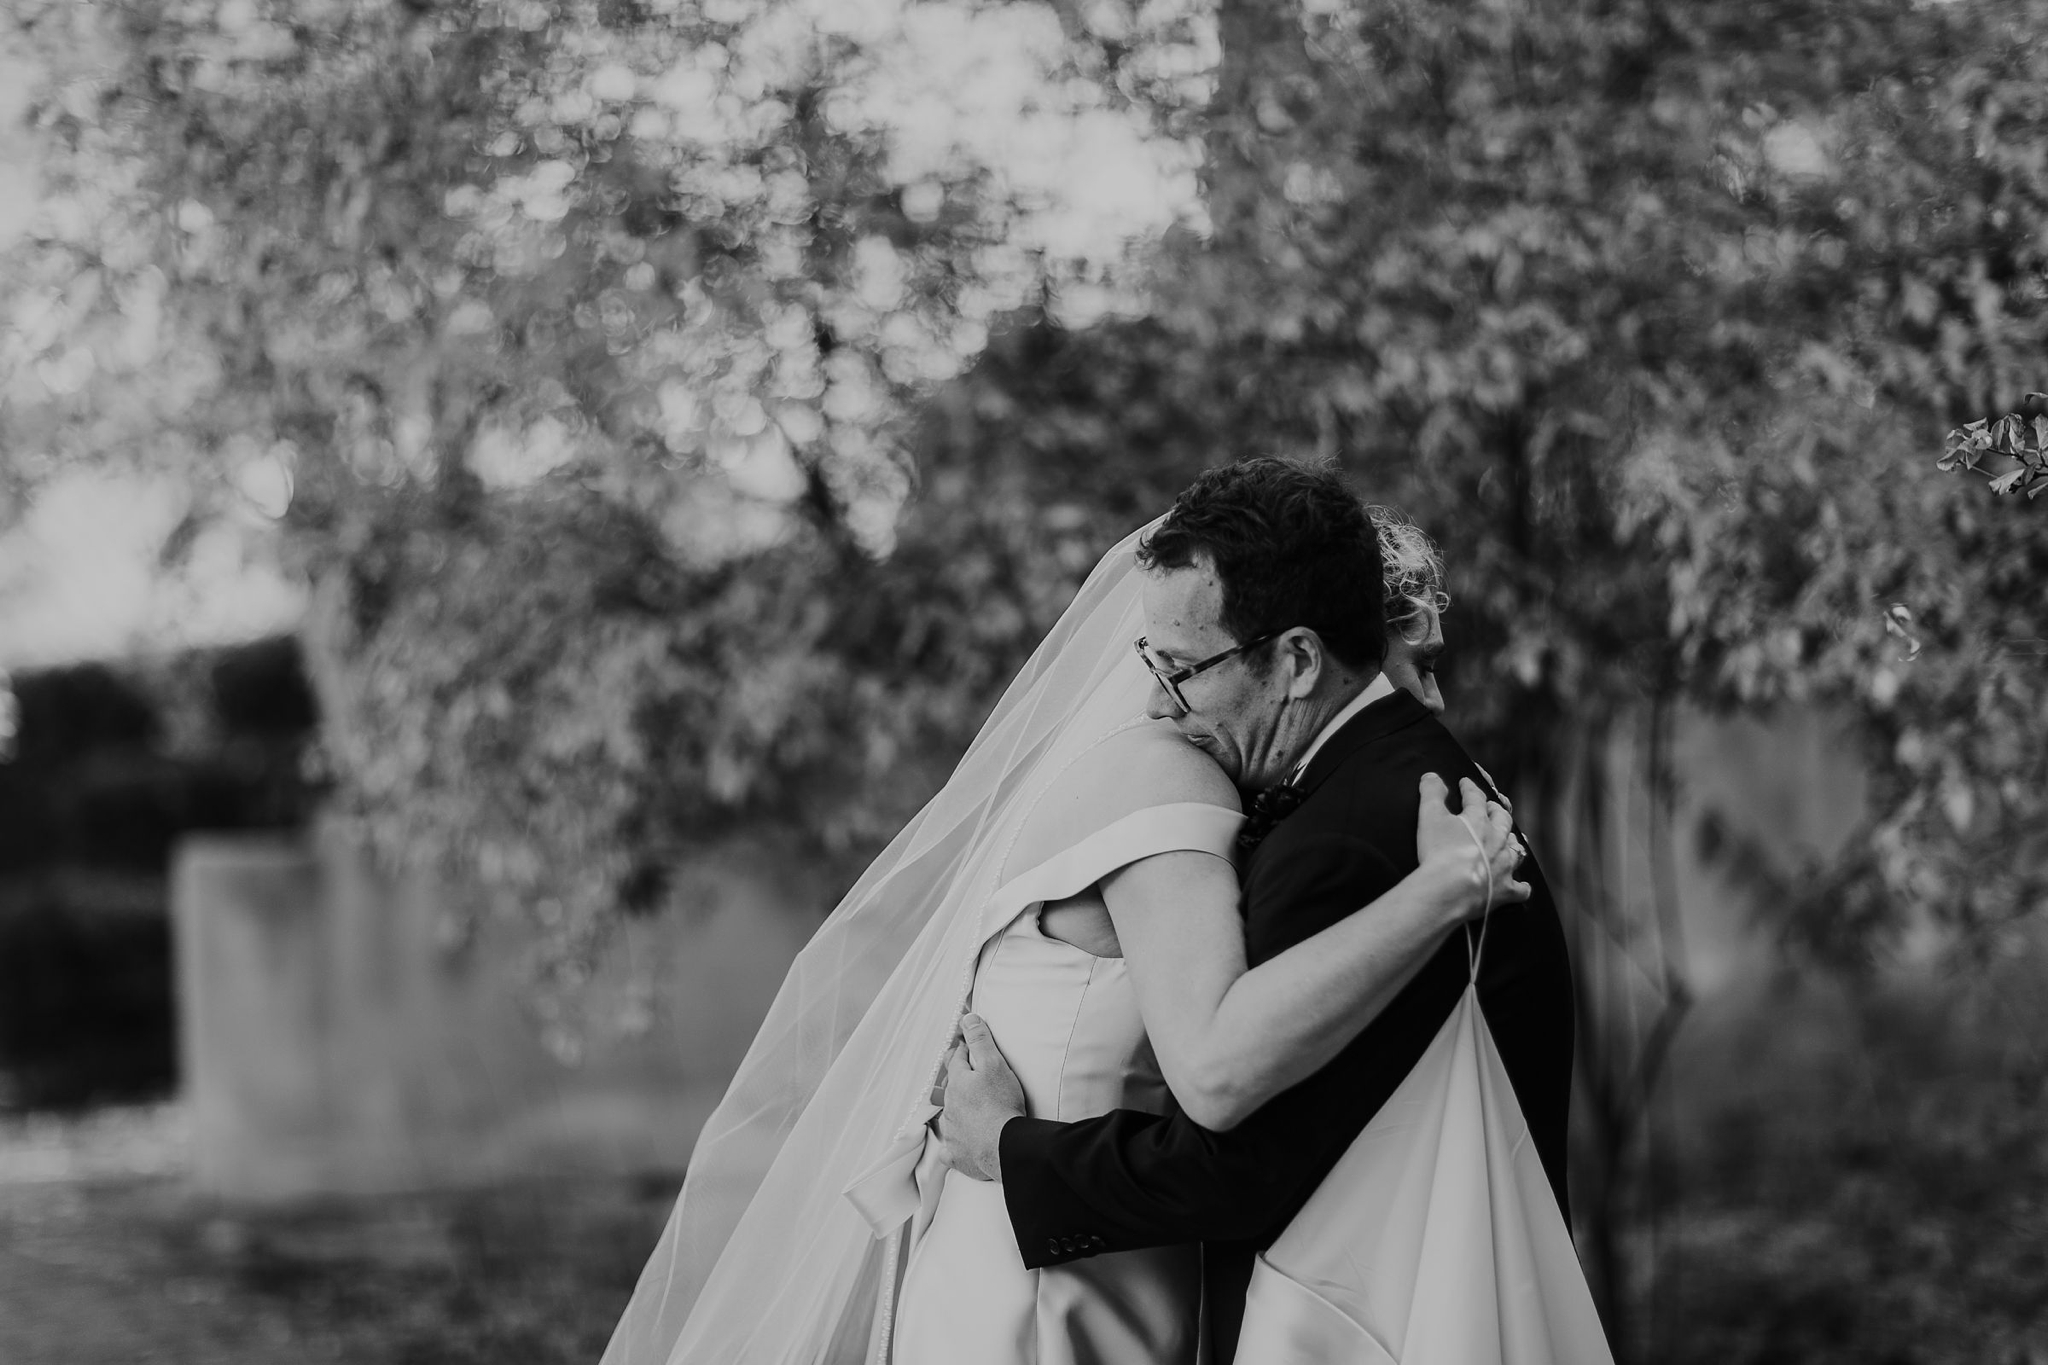 Alicia+lucia+photography+-+albuquerque+wedding+photographer+-+santa+fe+wedding+photography+-+new+mexico+wedding+photographer+-+new+mexico+wedding+-+albuquerque+wedding+-+los+poblanos+wedding+-+fall+wedding_0014.jpg